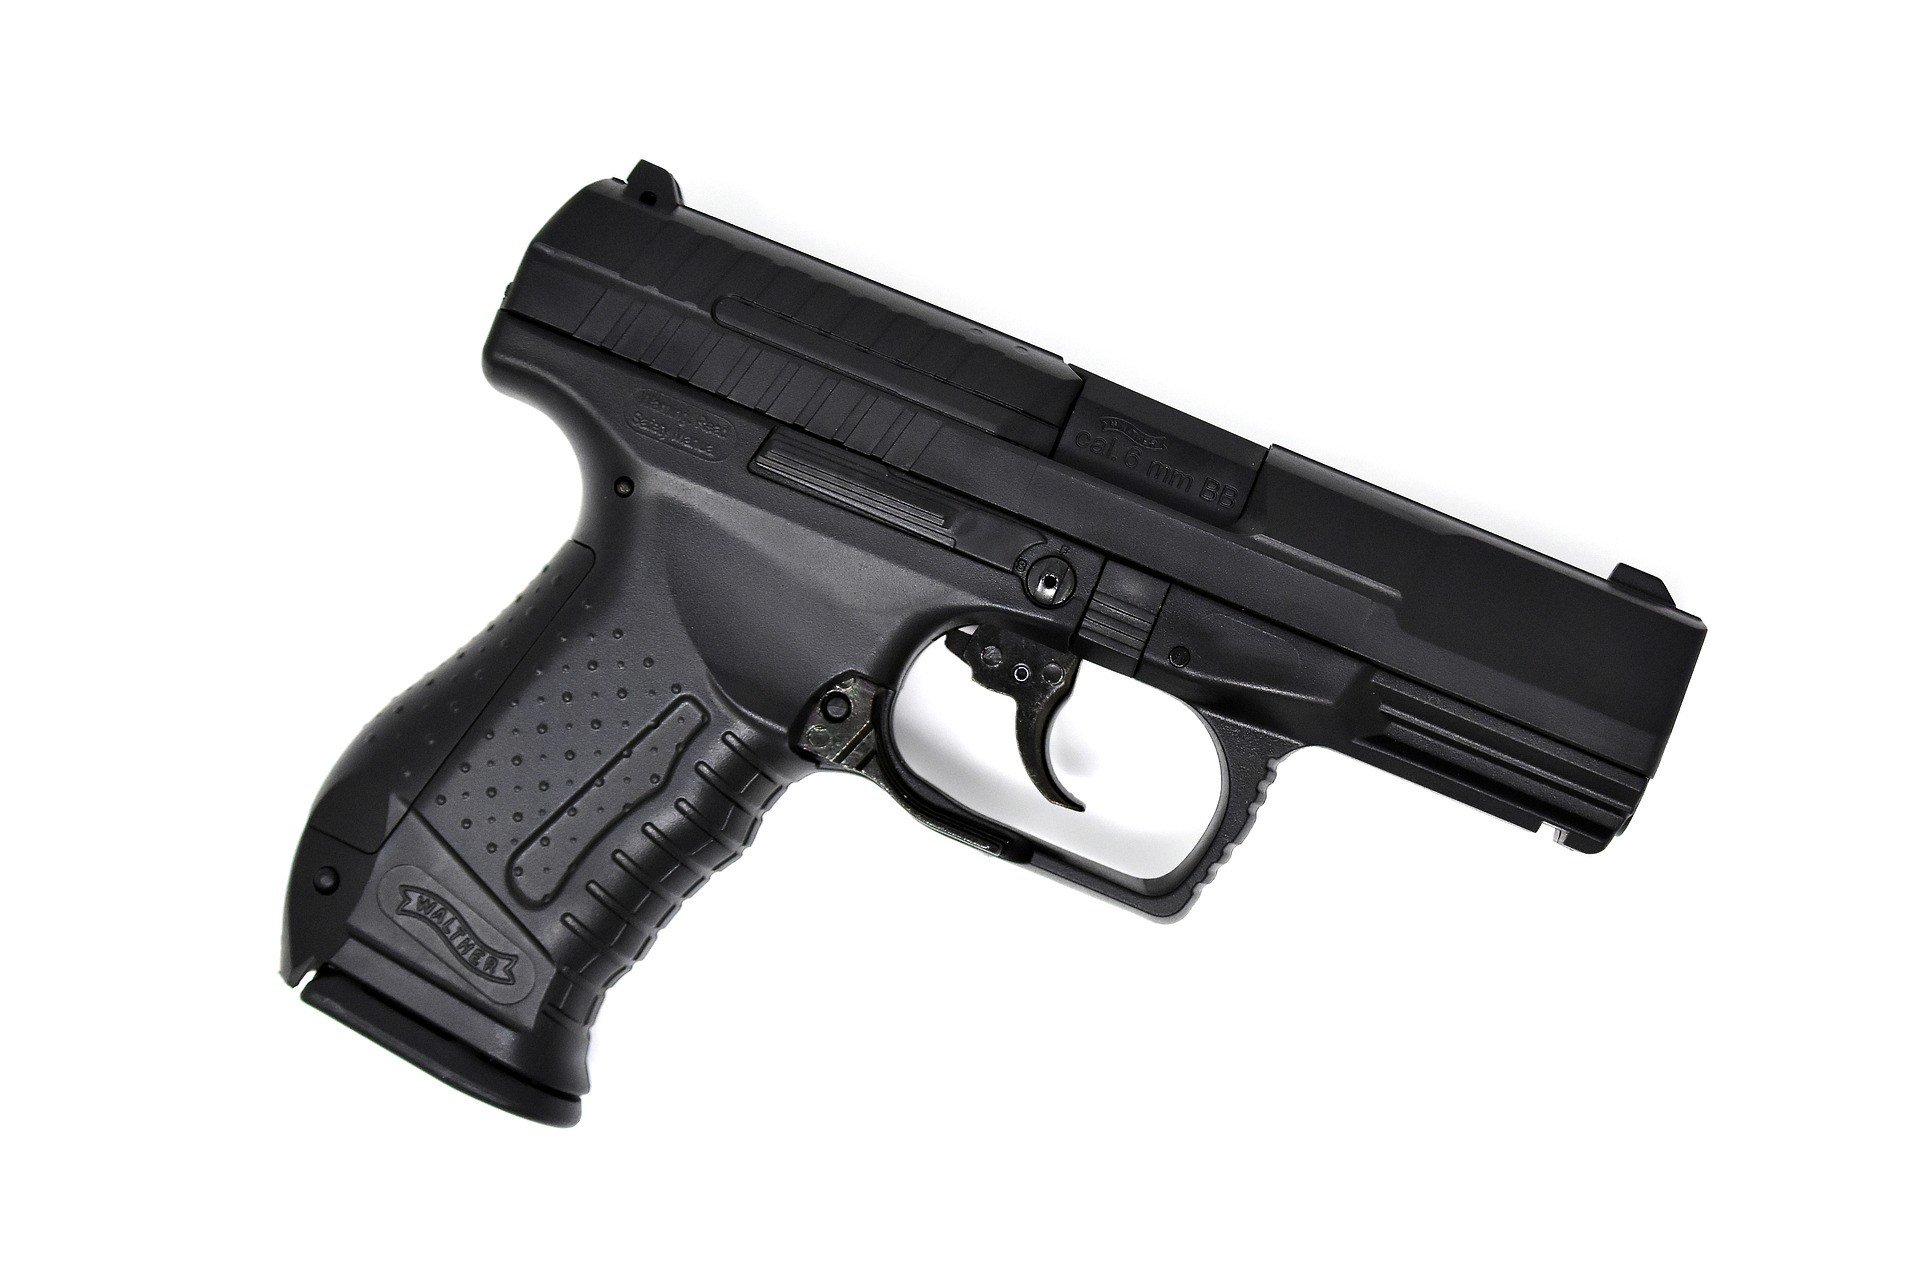 Example of an airsoft pistol